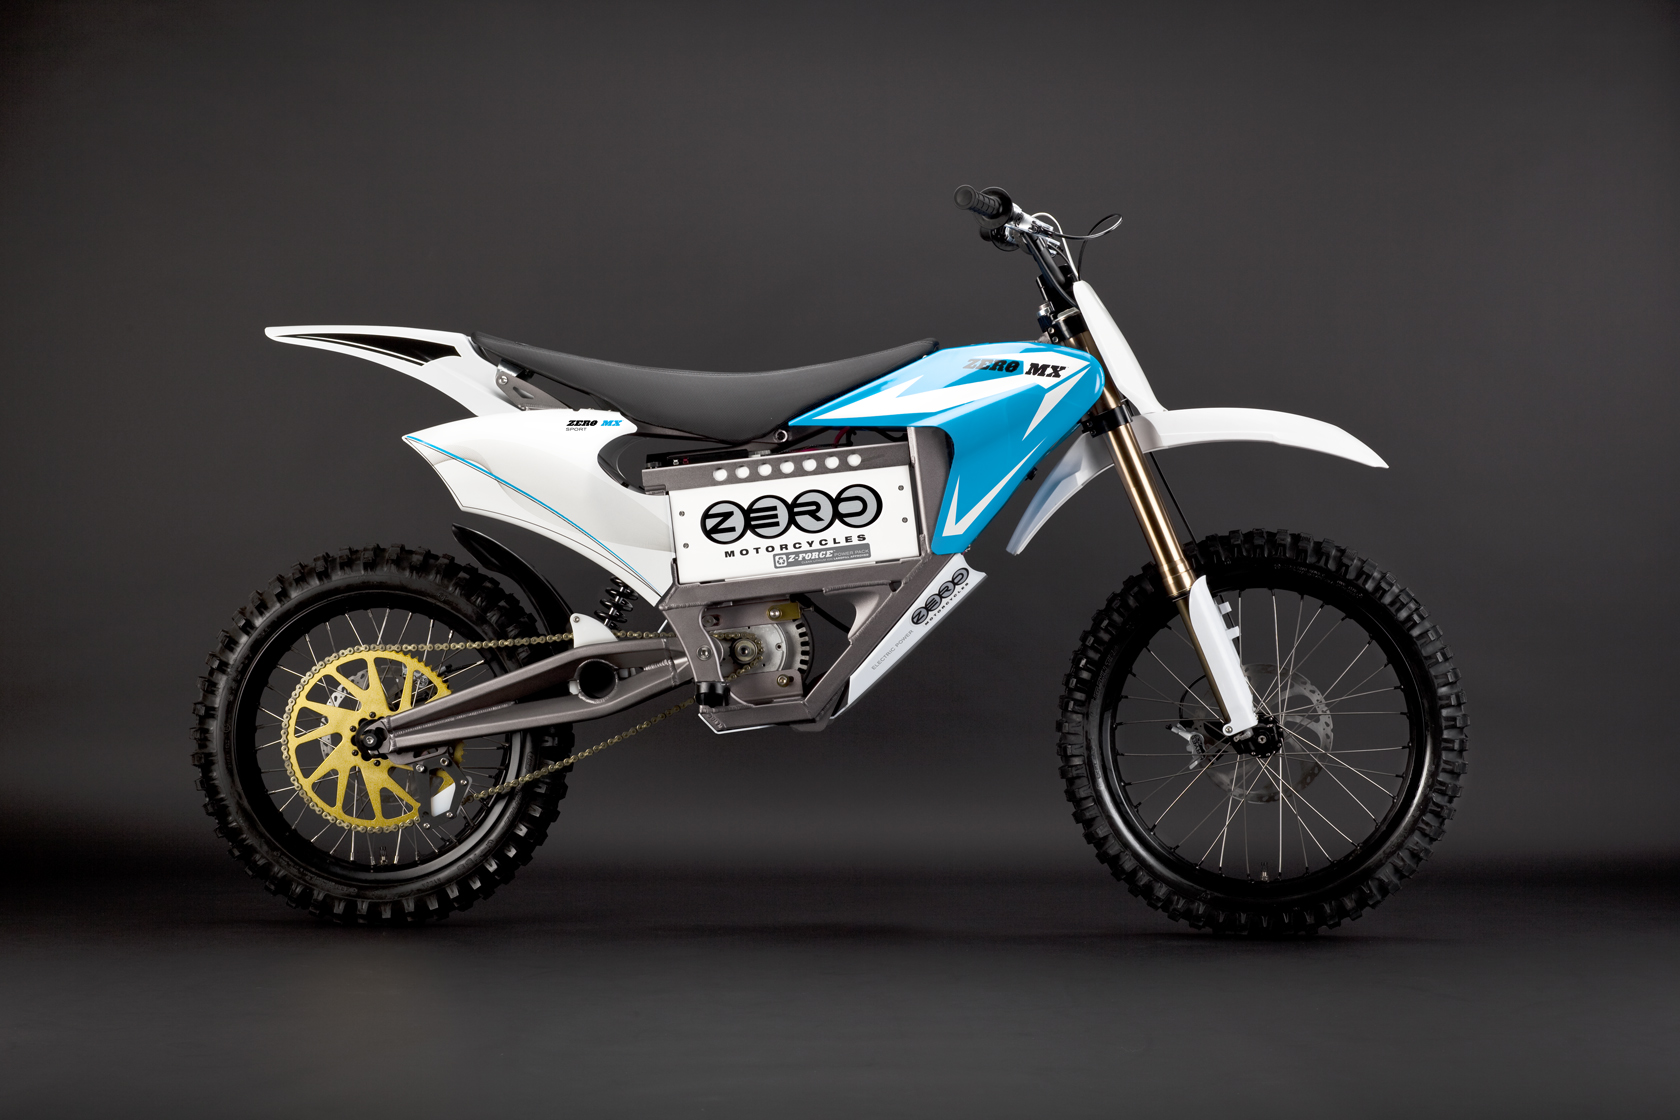 2010 Zero MX Electric Motorcycle: Blue Profile Right